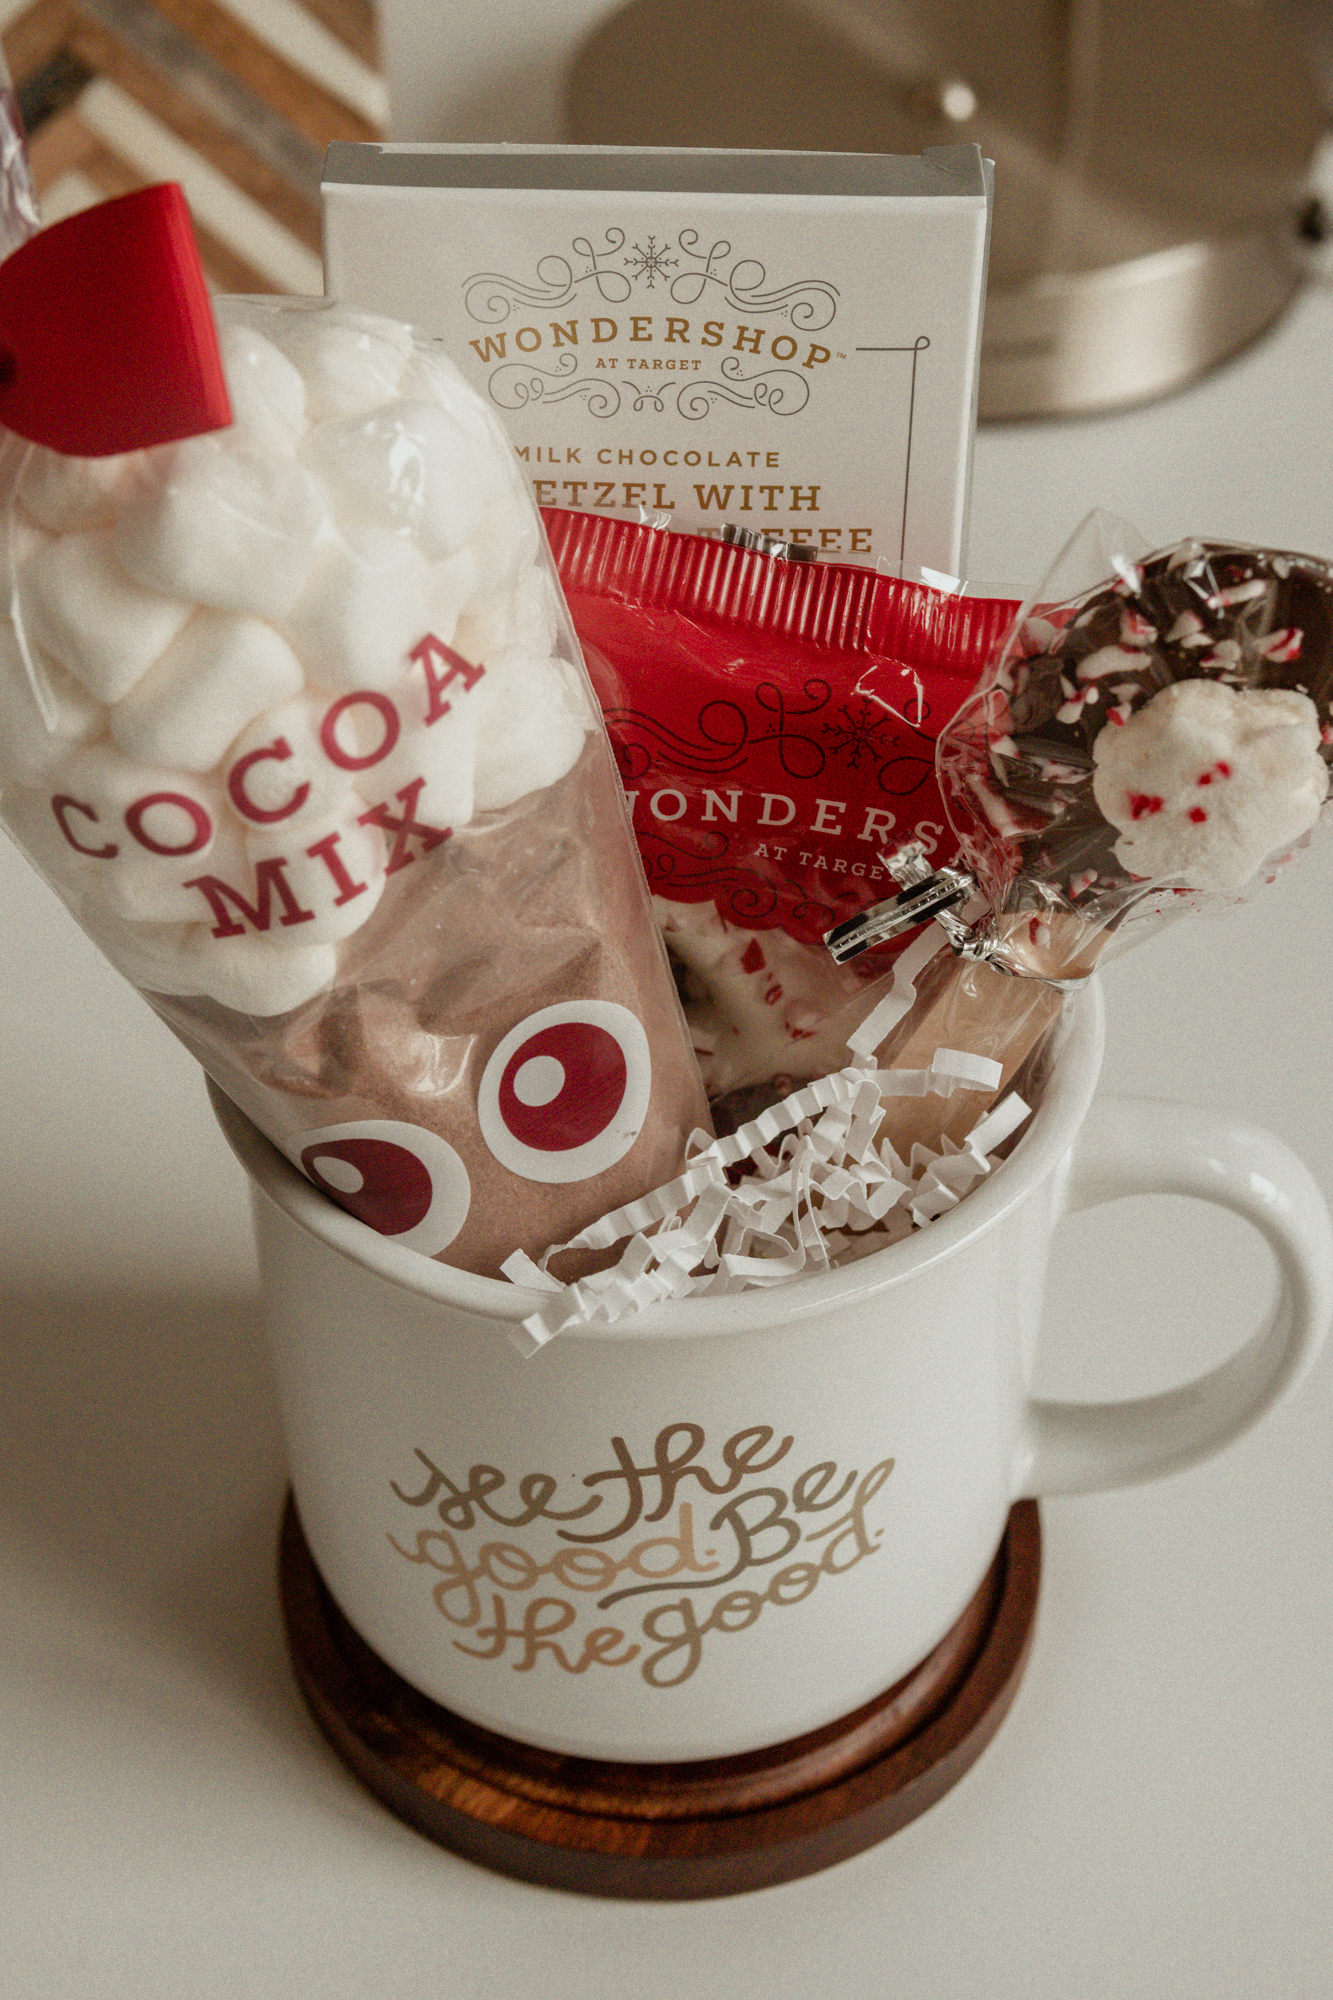 A filled mug gift idea for Christmas including hot cocoa supplies.